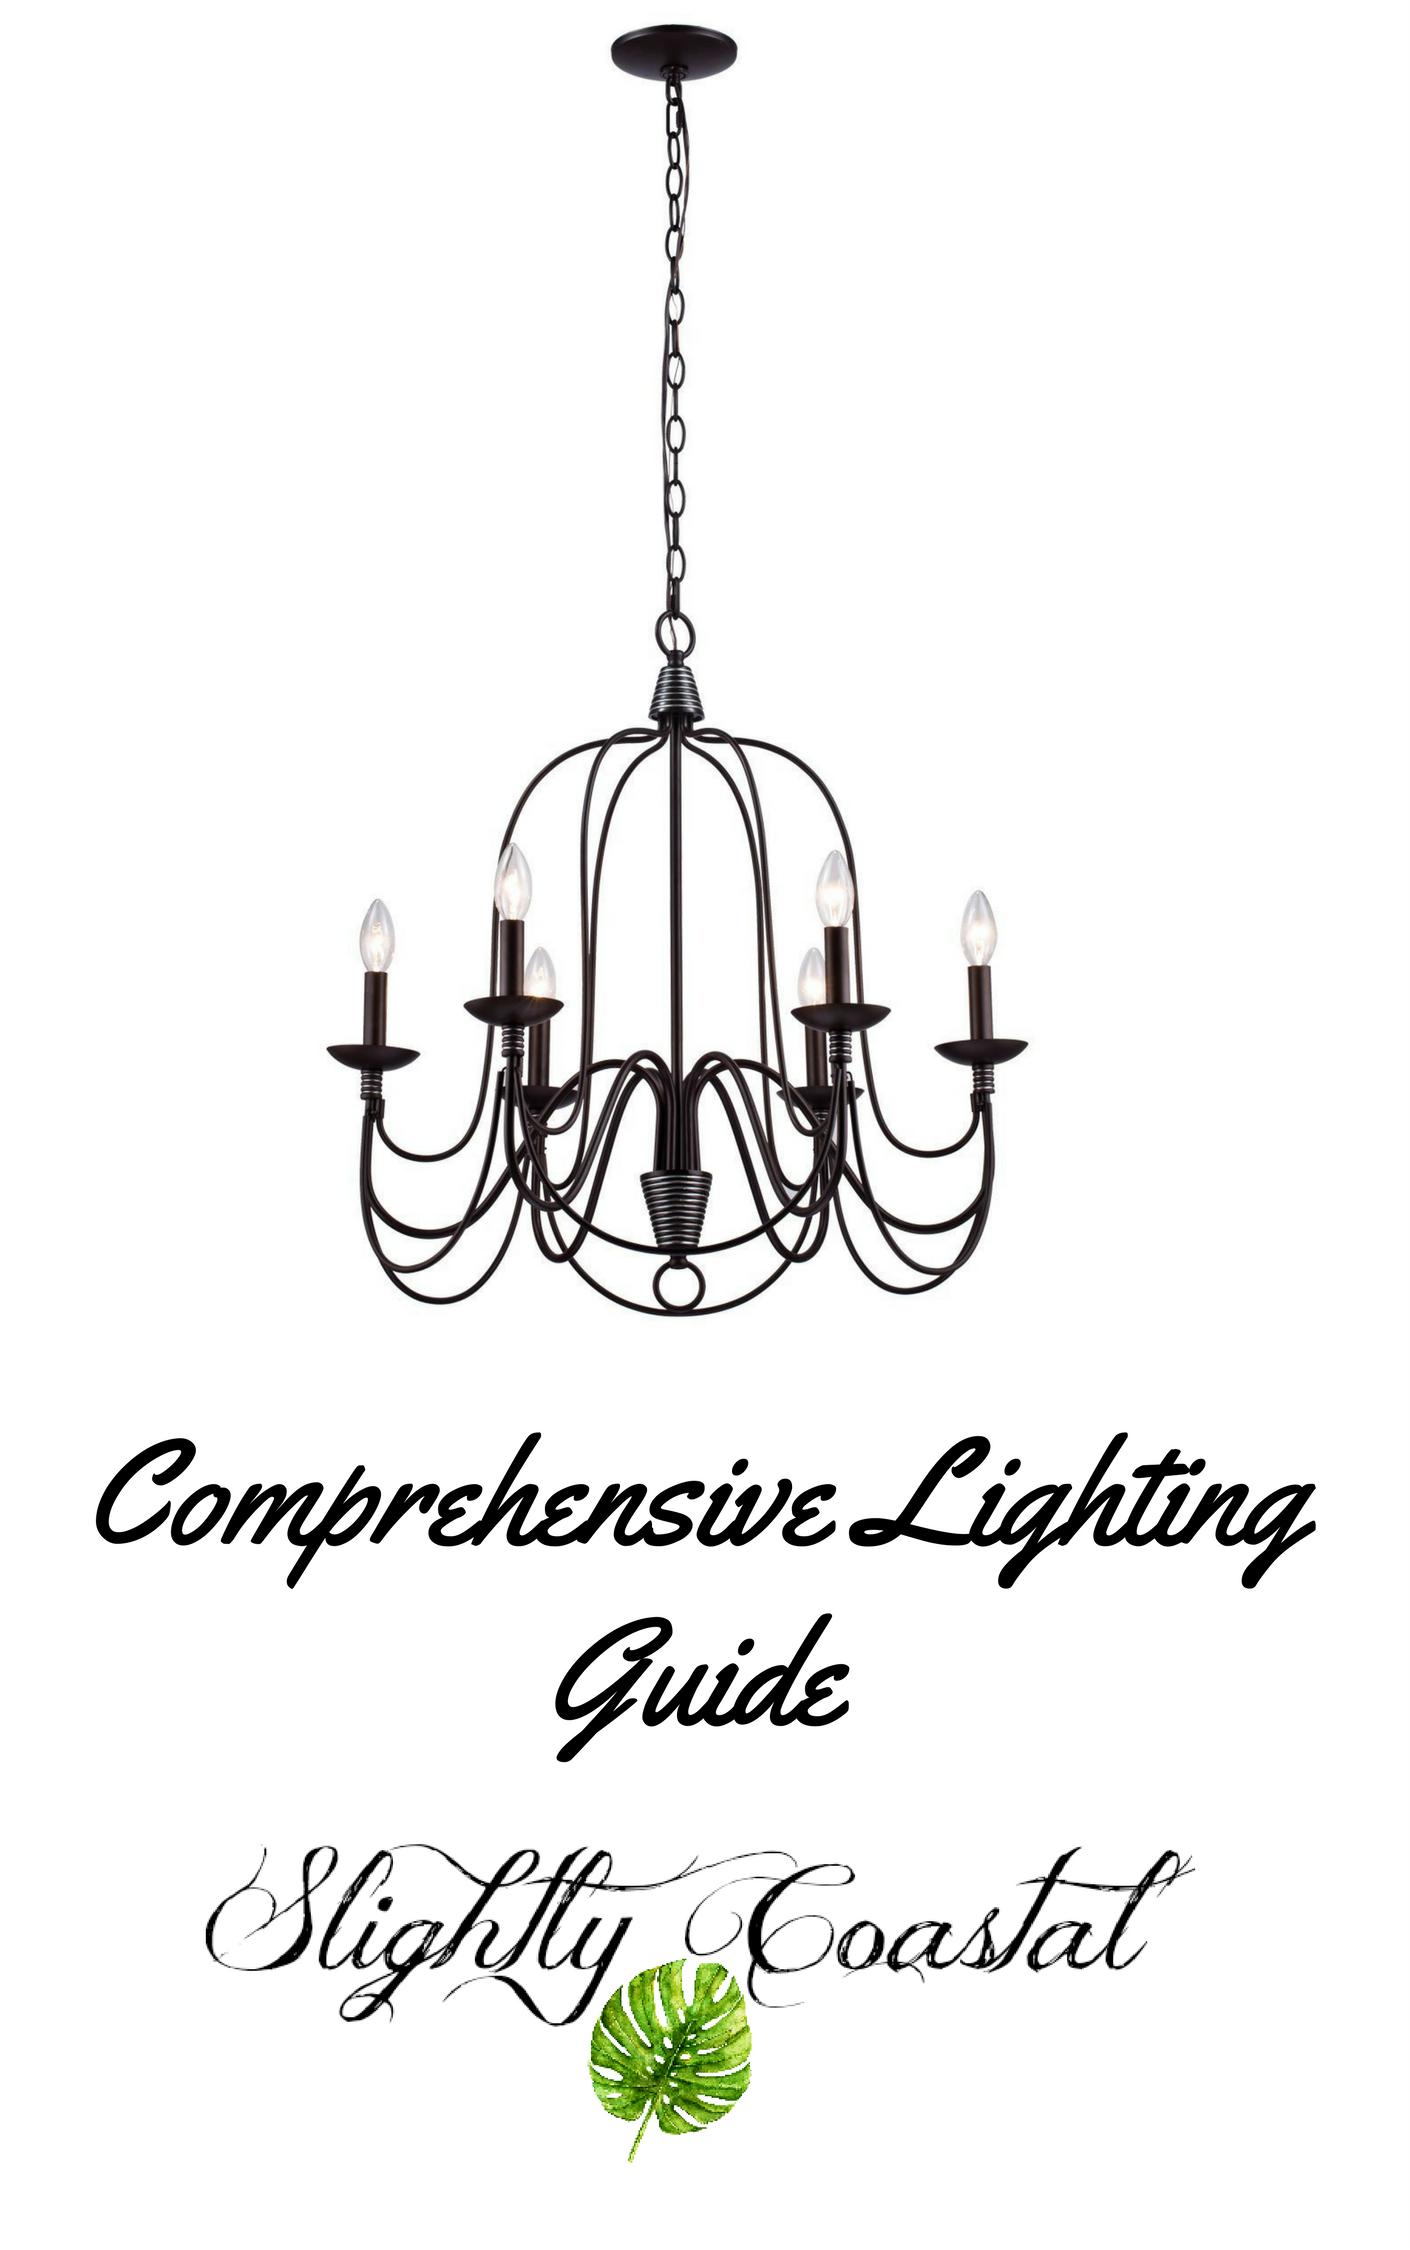 Comprehensive Lighting Guide